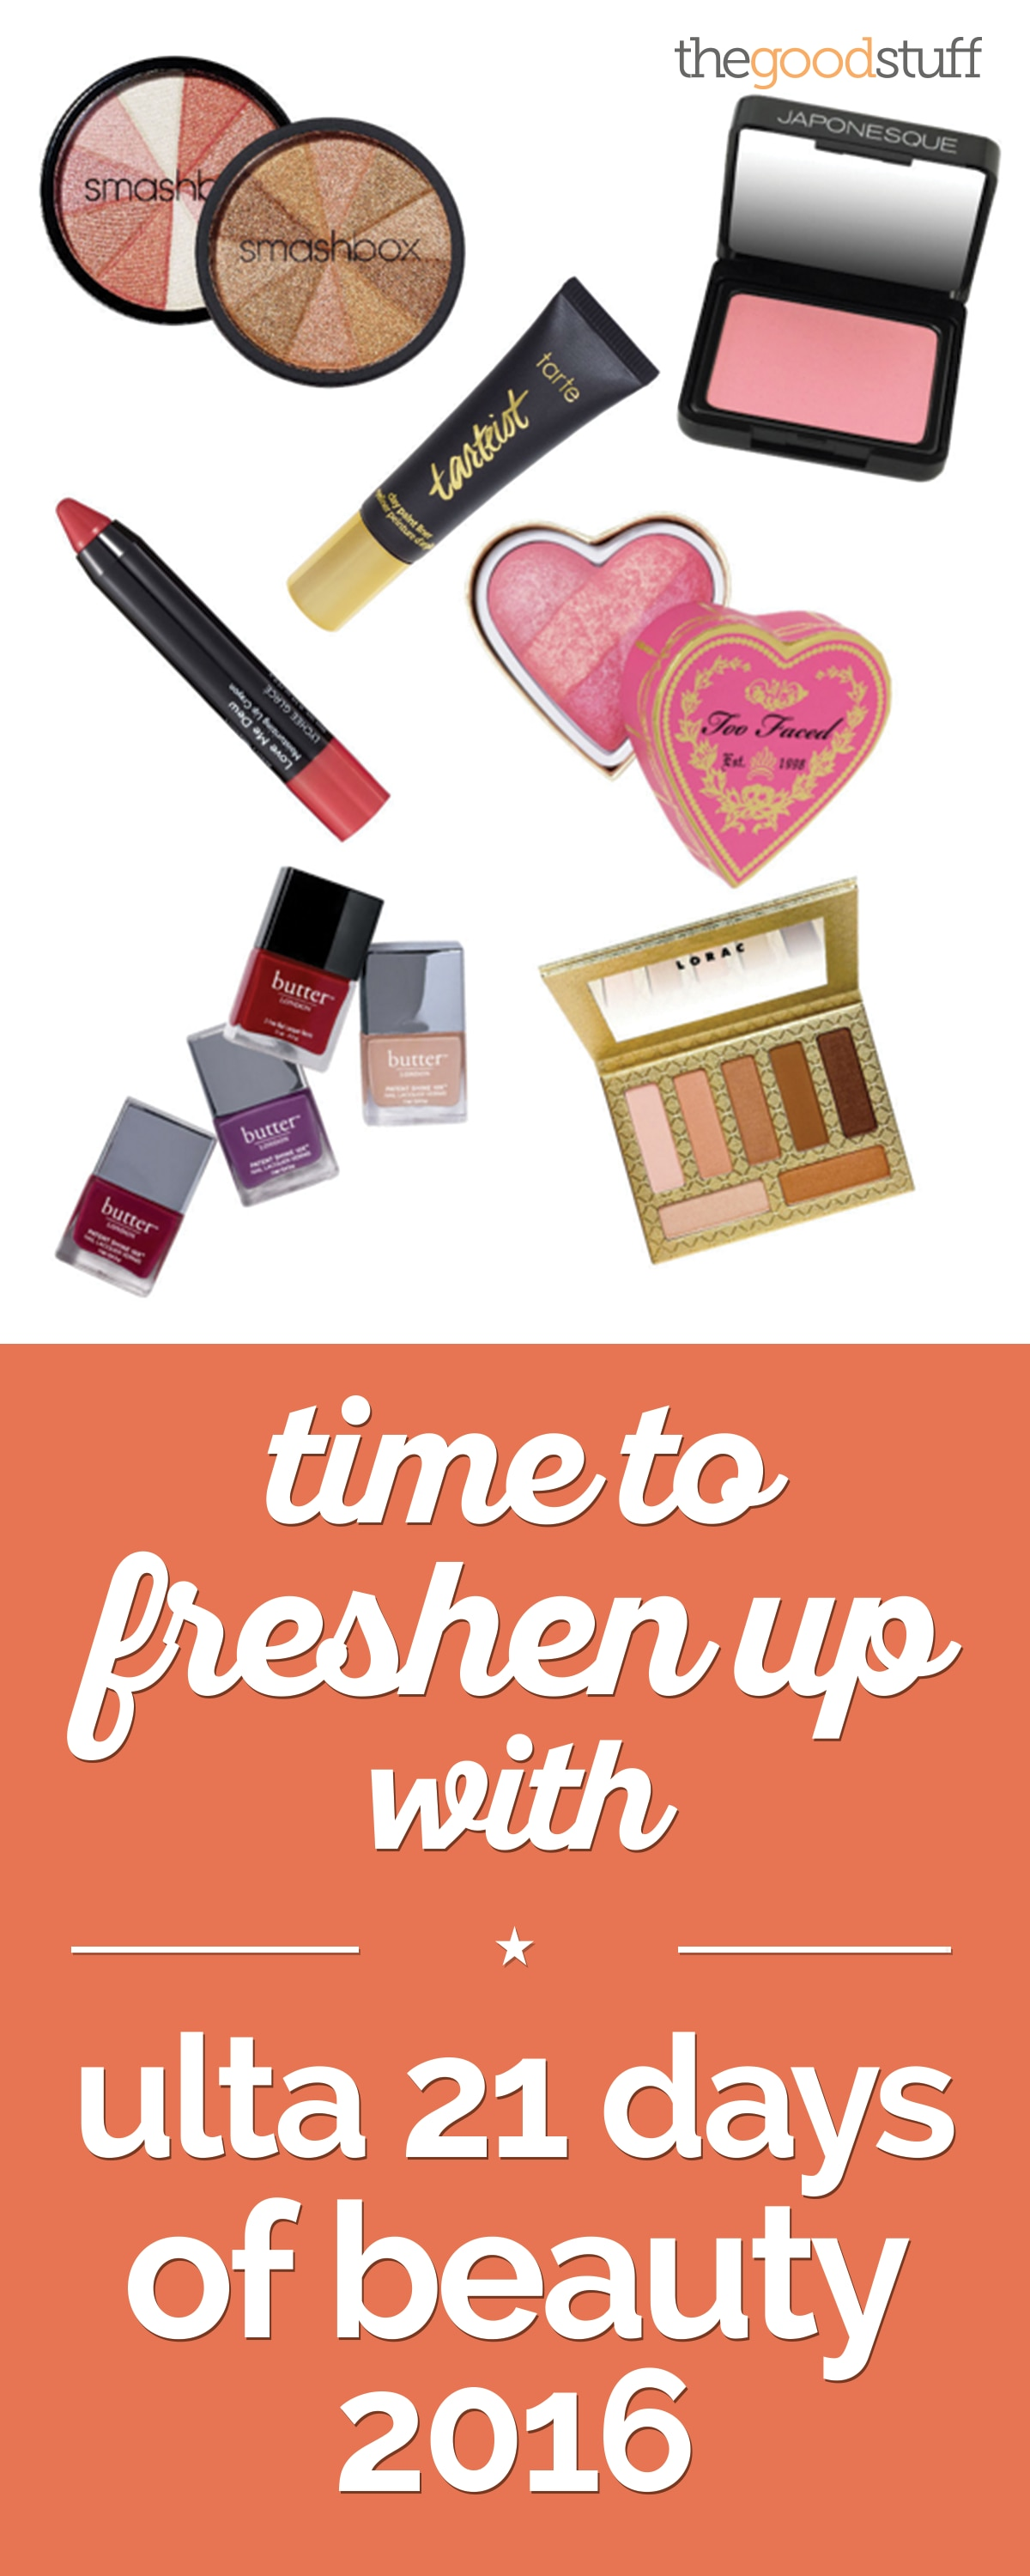 Time to Freshen Up with Ulta 21 Days Of Beauty 2016 | thegoodstuff